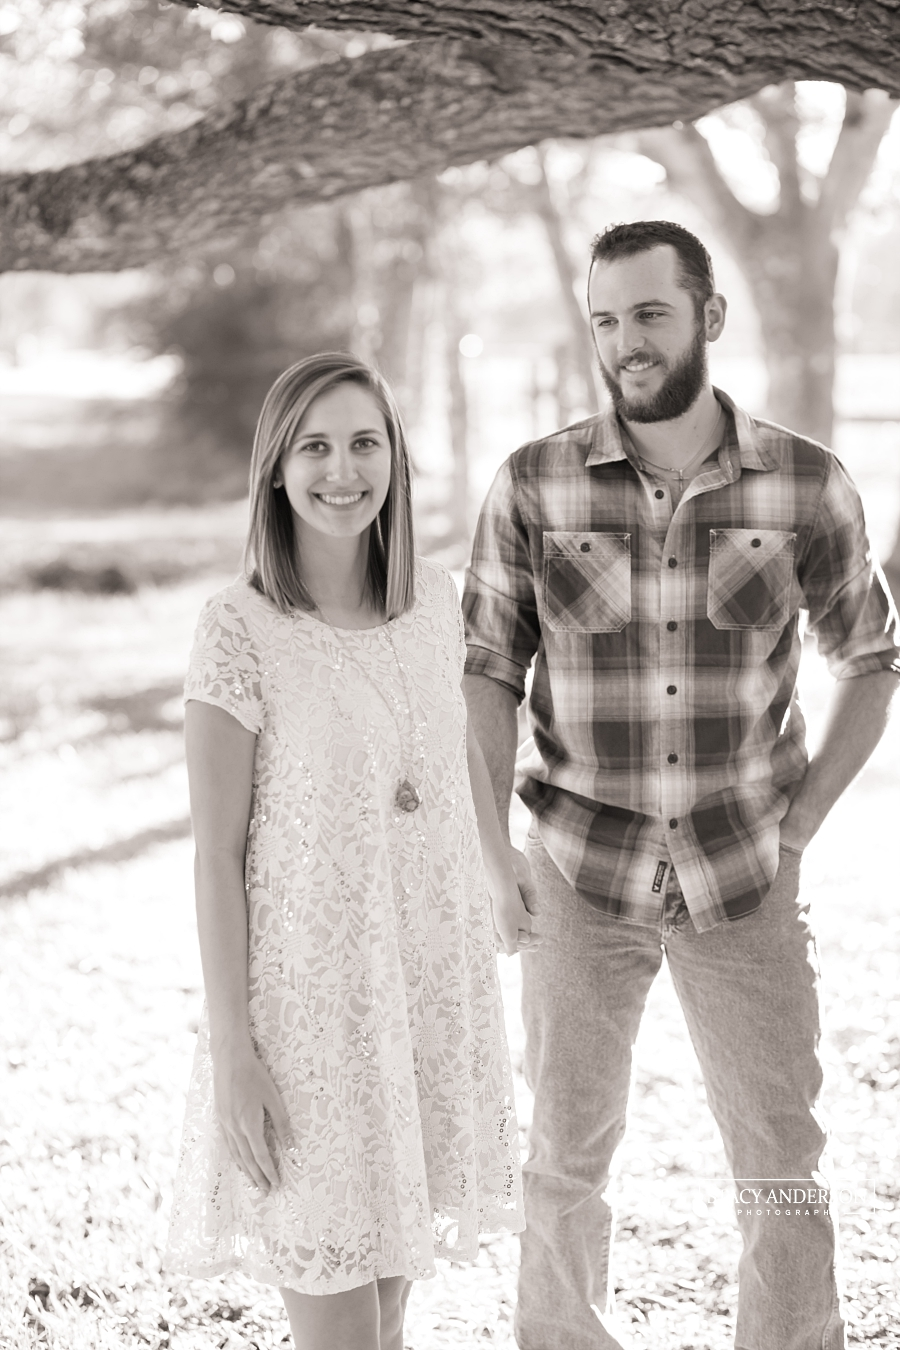 stacy-anderson-photography-alvin-wedding-photographer_0011